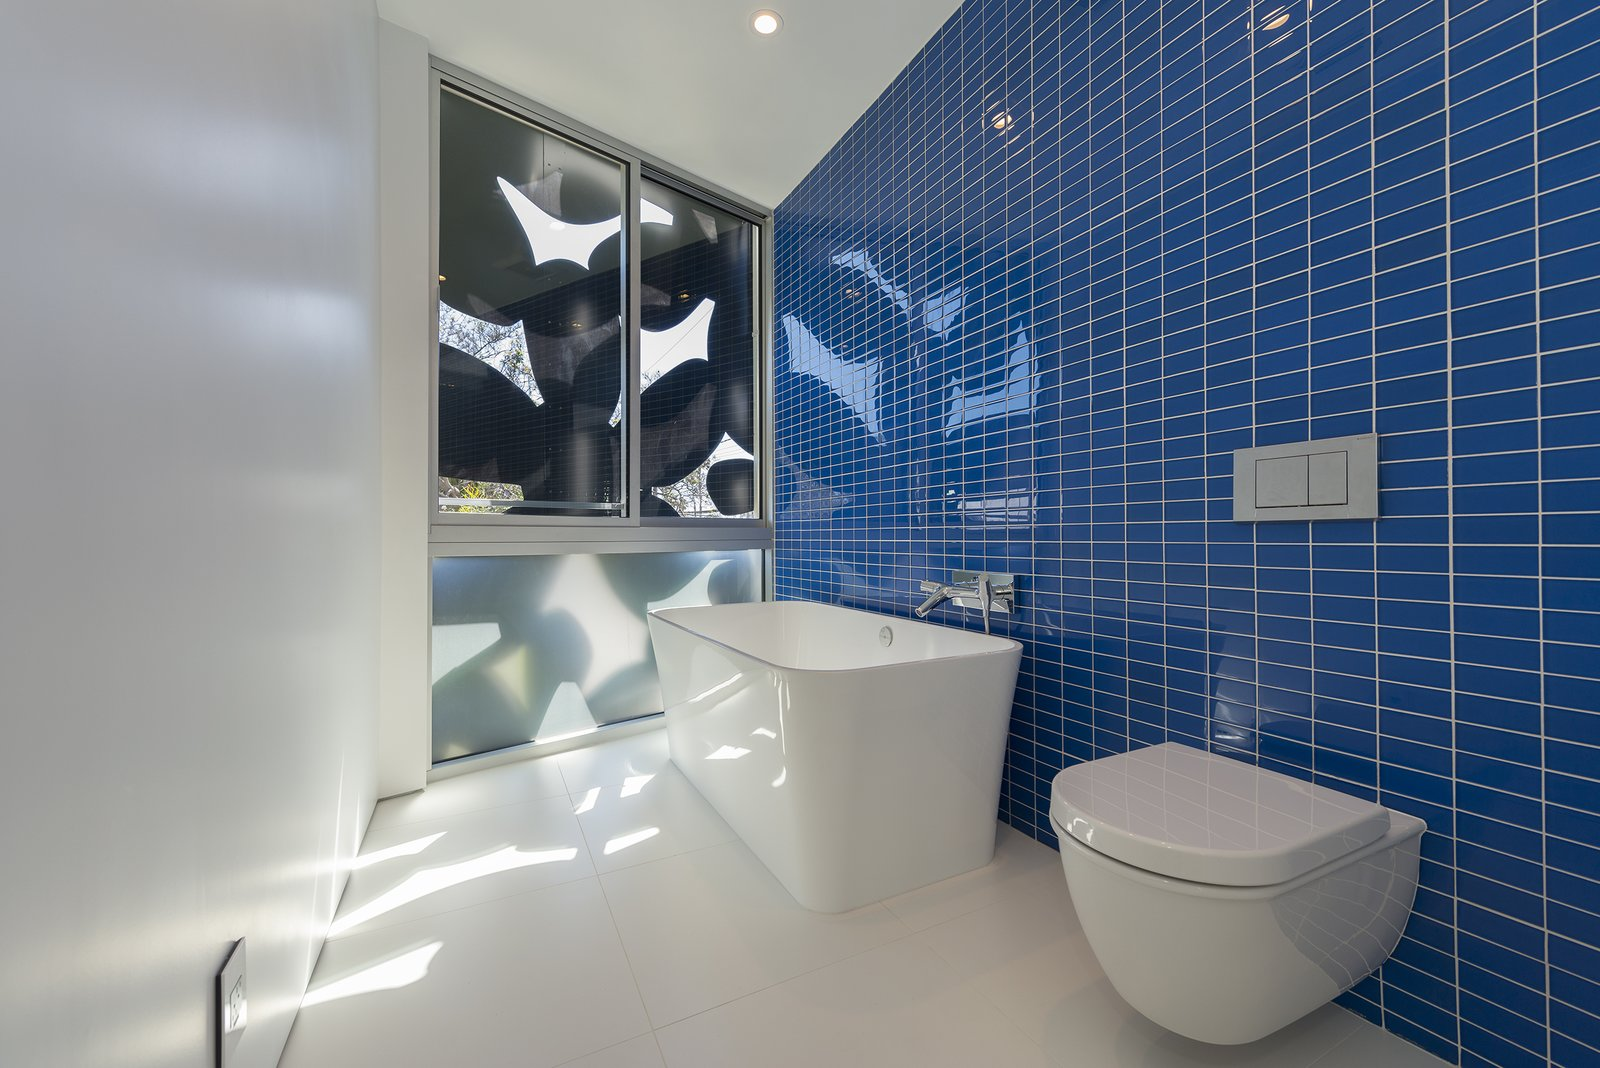 Glass-tile and porcelain bathroom Tagged: Bath Room, Porcelain Tile Floor, Vessel Sink, Freestanding Tub, Ceiling Lighting, Glass Tile Wall, One Piece Toilet, and Open Shower.  Best Photos from 4016 Tivoli